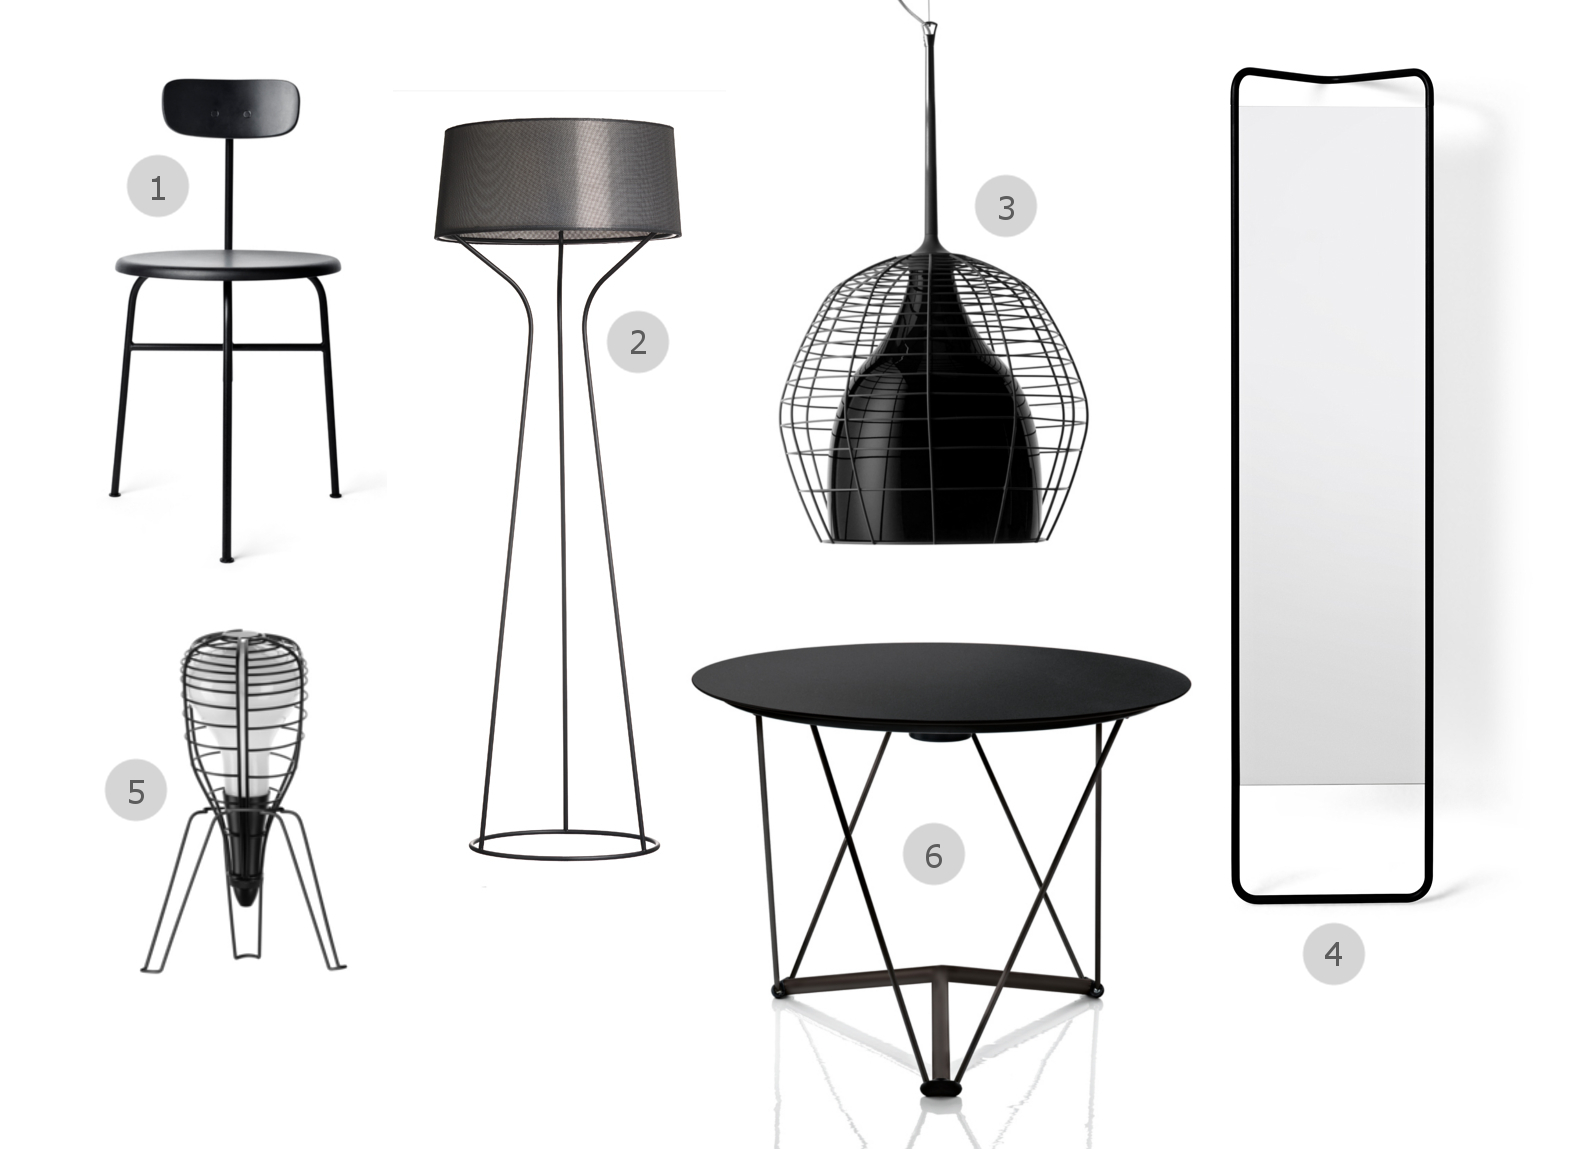 1.Menu Afteroom Chair 2.Orsjo Aria Floor Lamp 3.Diesel with Foscarini Cage Suspension Light Large 4.Menu Kaschkasch Floor Mirror 5.Diesel with Foscarini Cage Rocket Table Lamp 6.Magis Lem Round Table